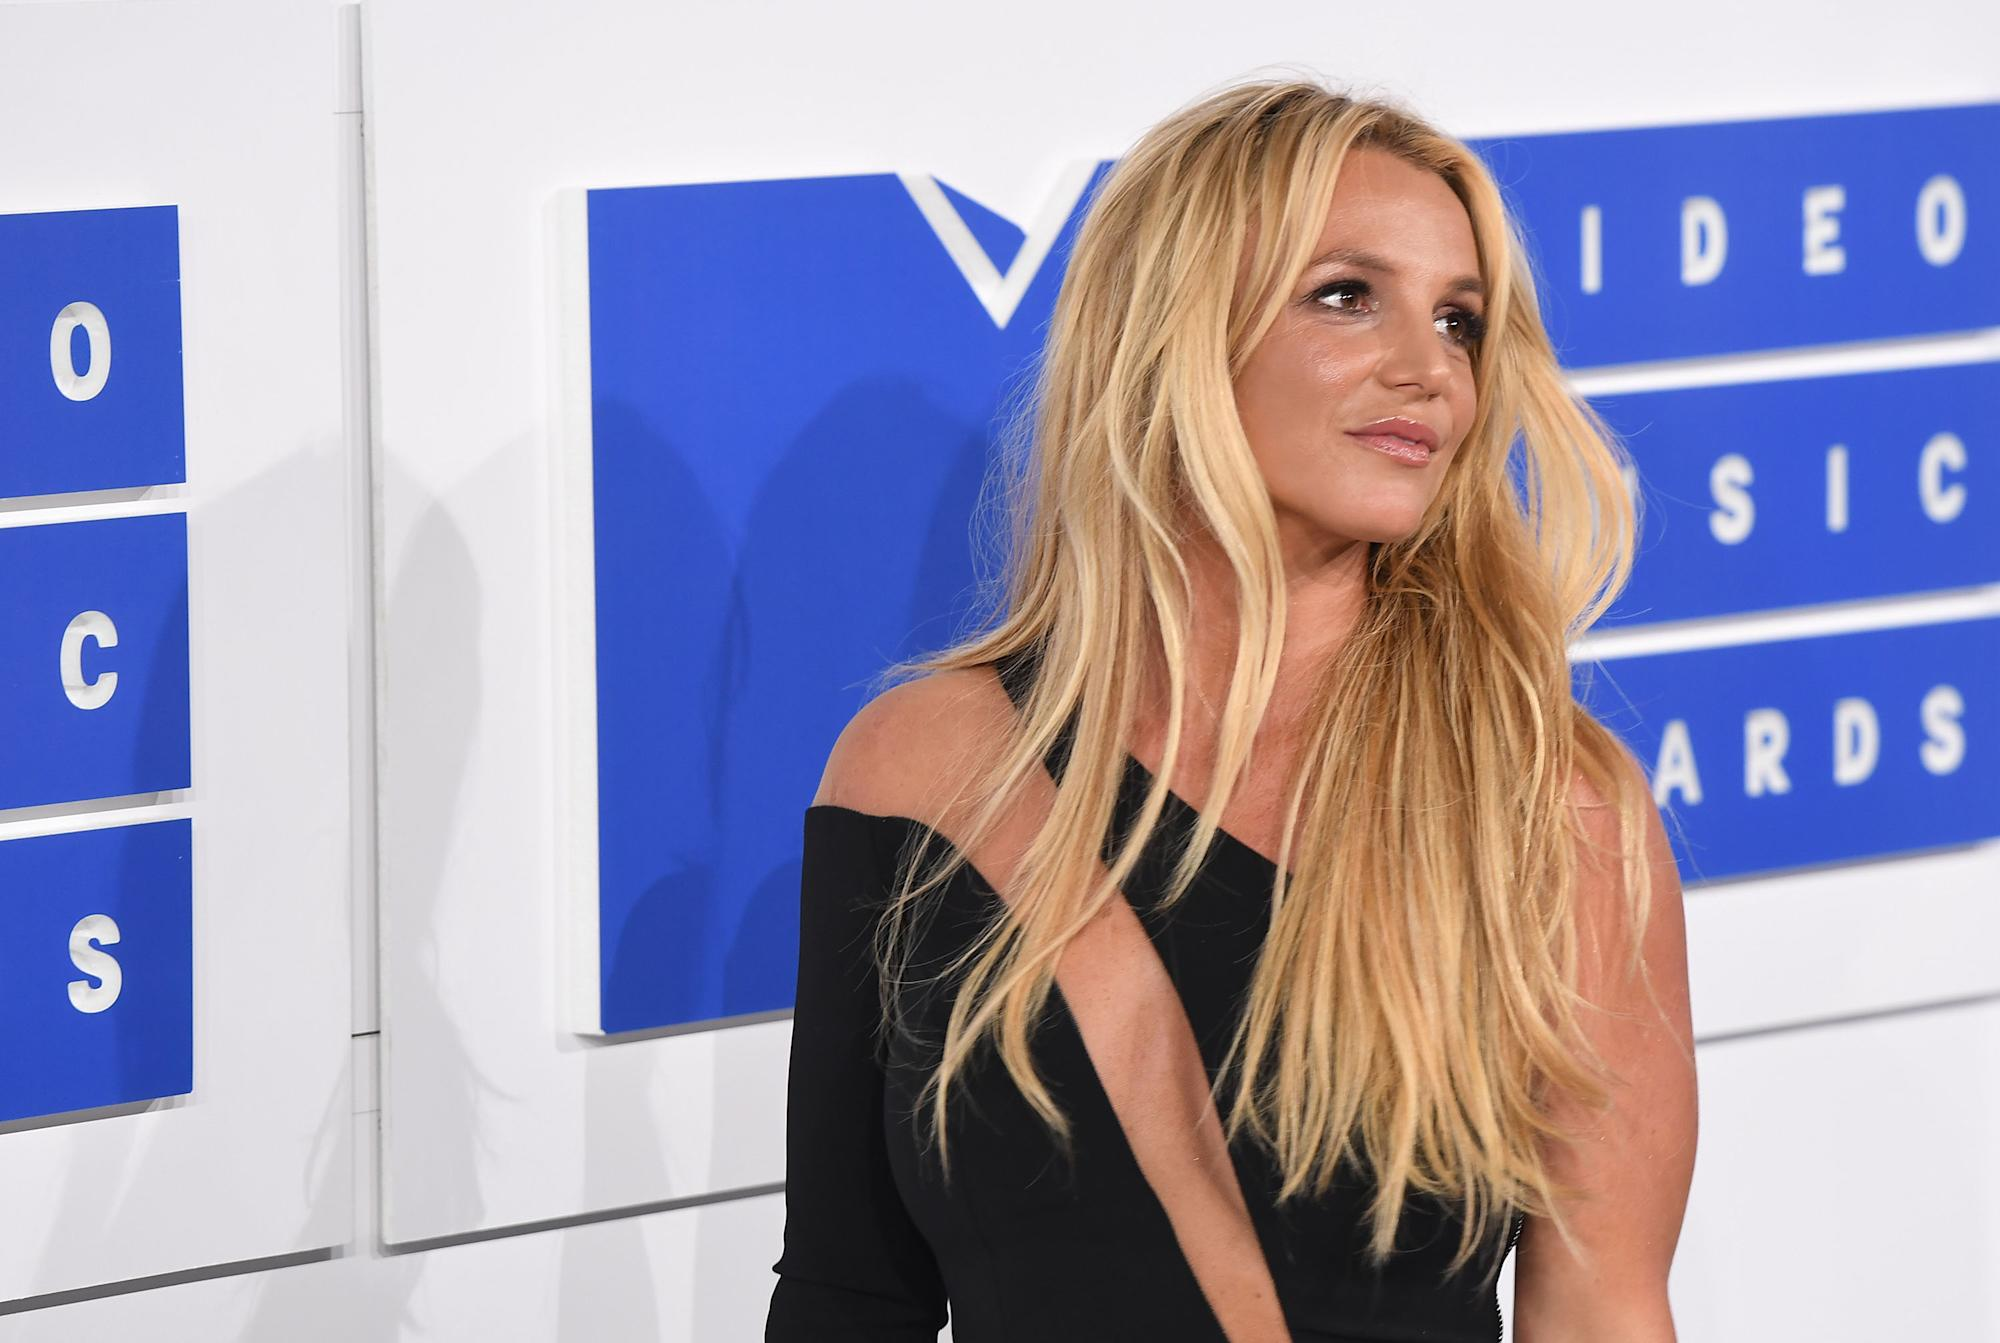 Britney Spears, Lindsay Lohan and Paris Hilton: Why people are cringe-watching old interviews - Yahoo Lifestyle